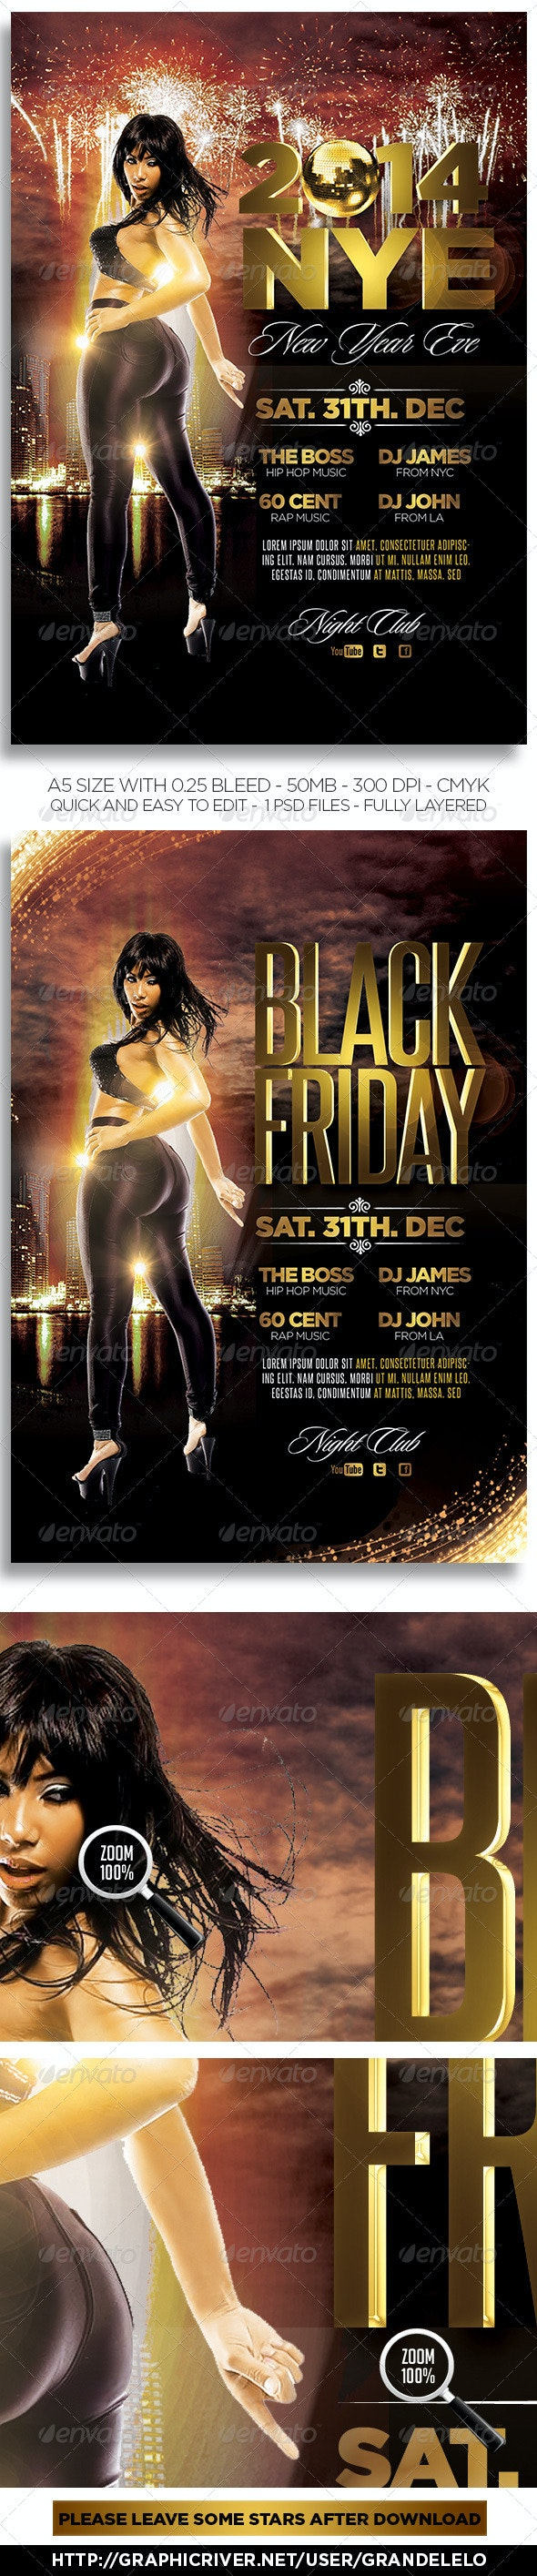 NYE 2014 Flyer n Black Friday - Clubs & Parties Events